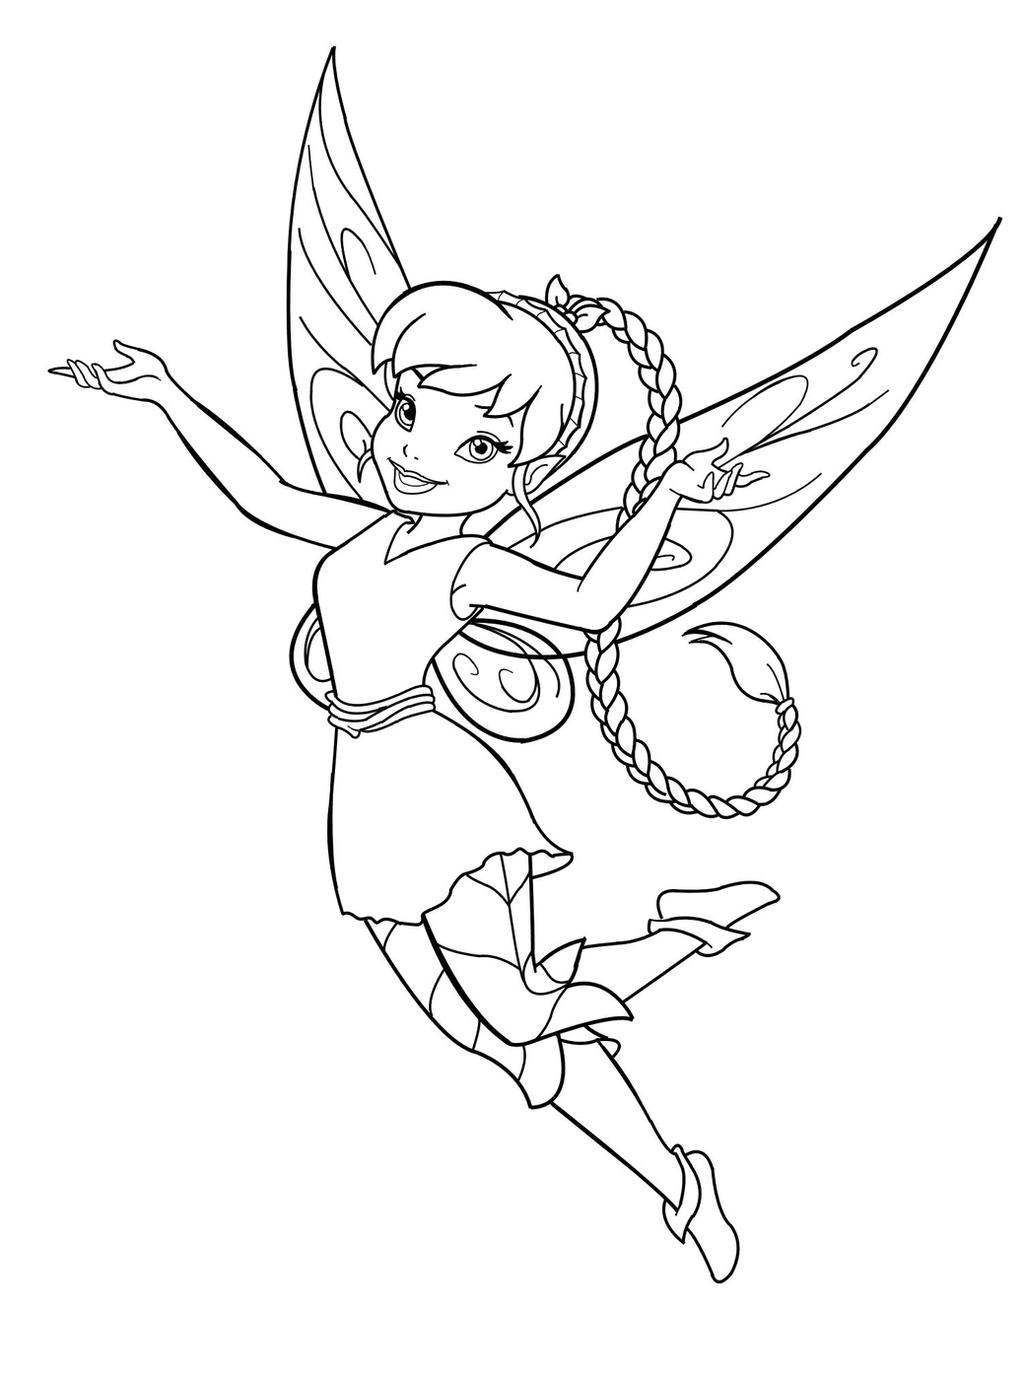 fawn fairy coloring pages disney fairy fawn lineart by mercuriusneko on deviantart